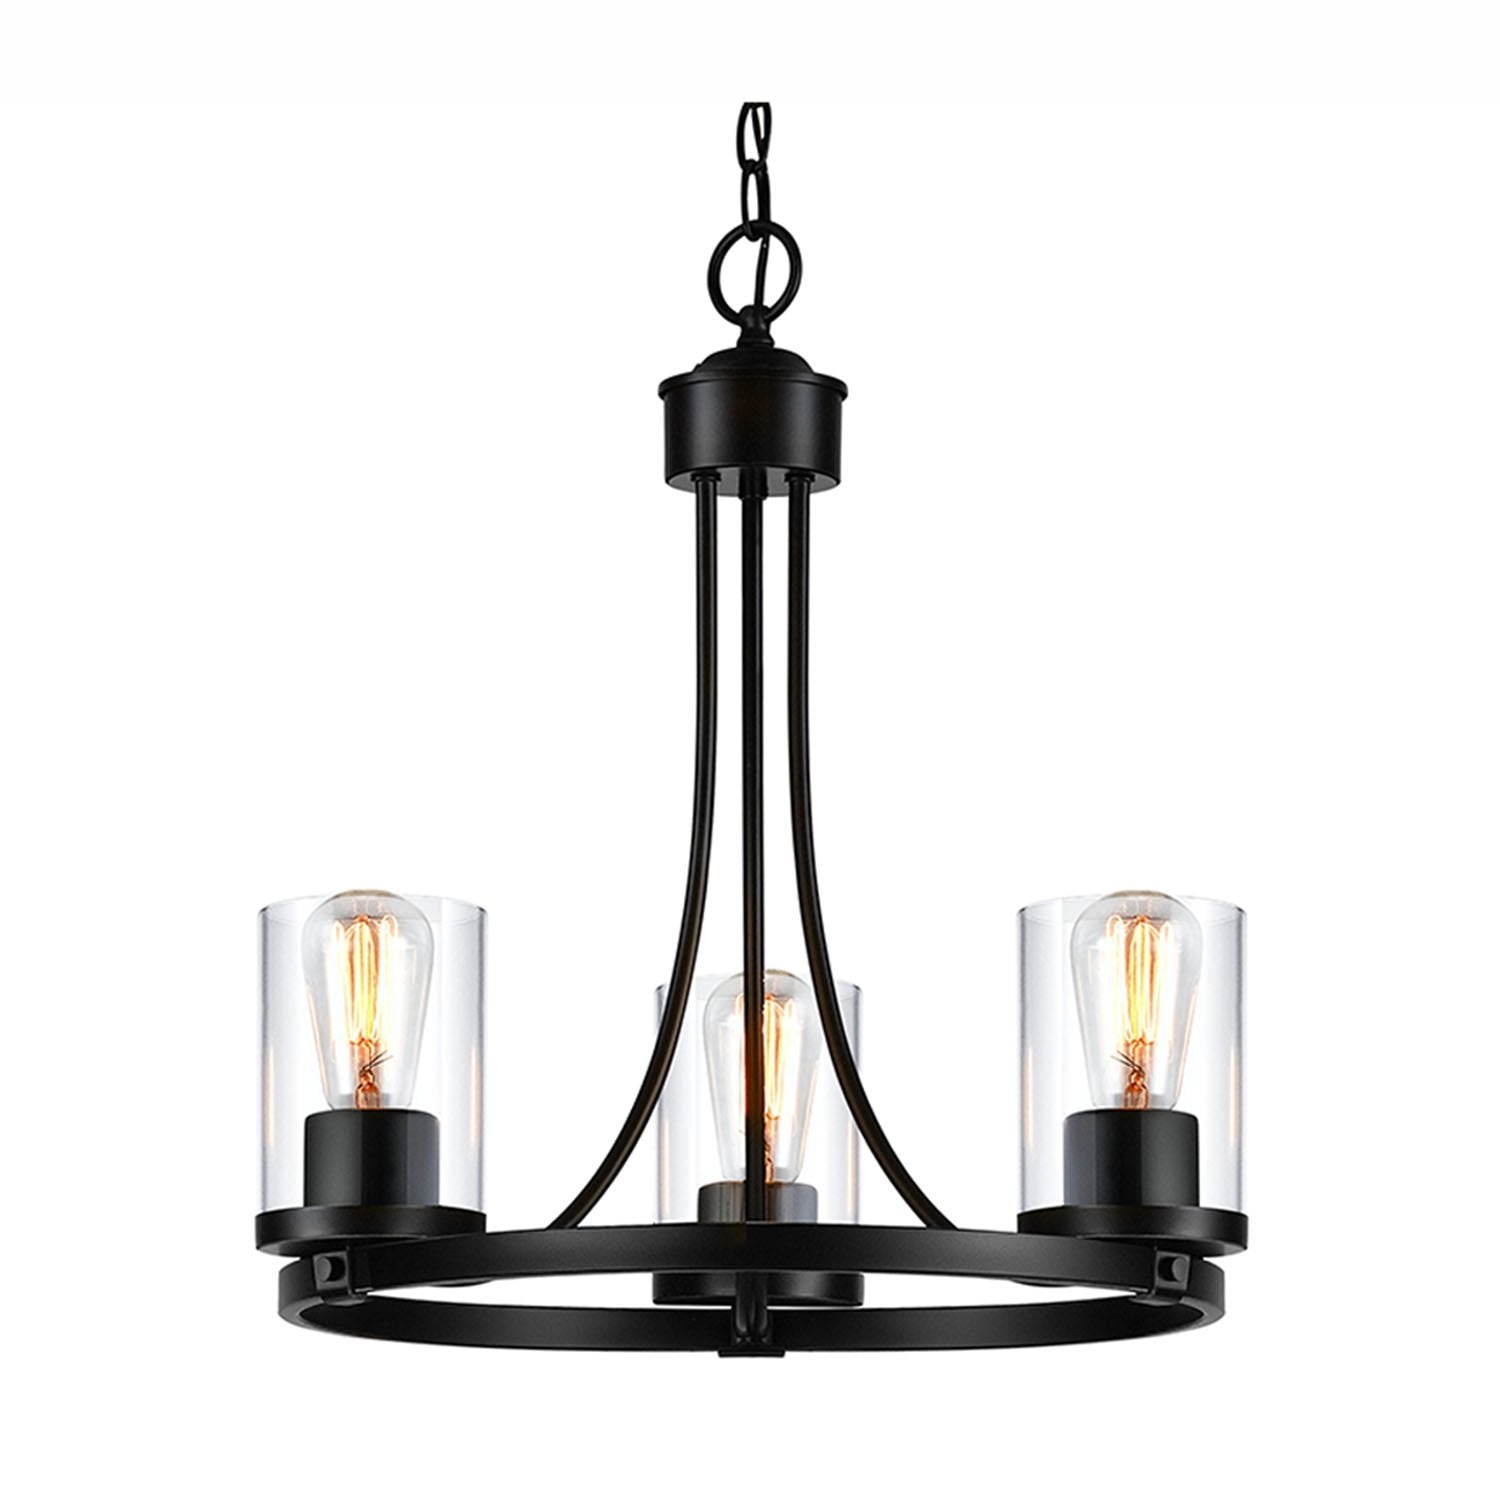 QPlus 3 Light Rustic Round Chandelier Pendant Lamp with E26 Bulb base & Clear Glass Shades - Black / Bronze - QPlus Home - Brighten Your Life